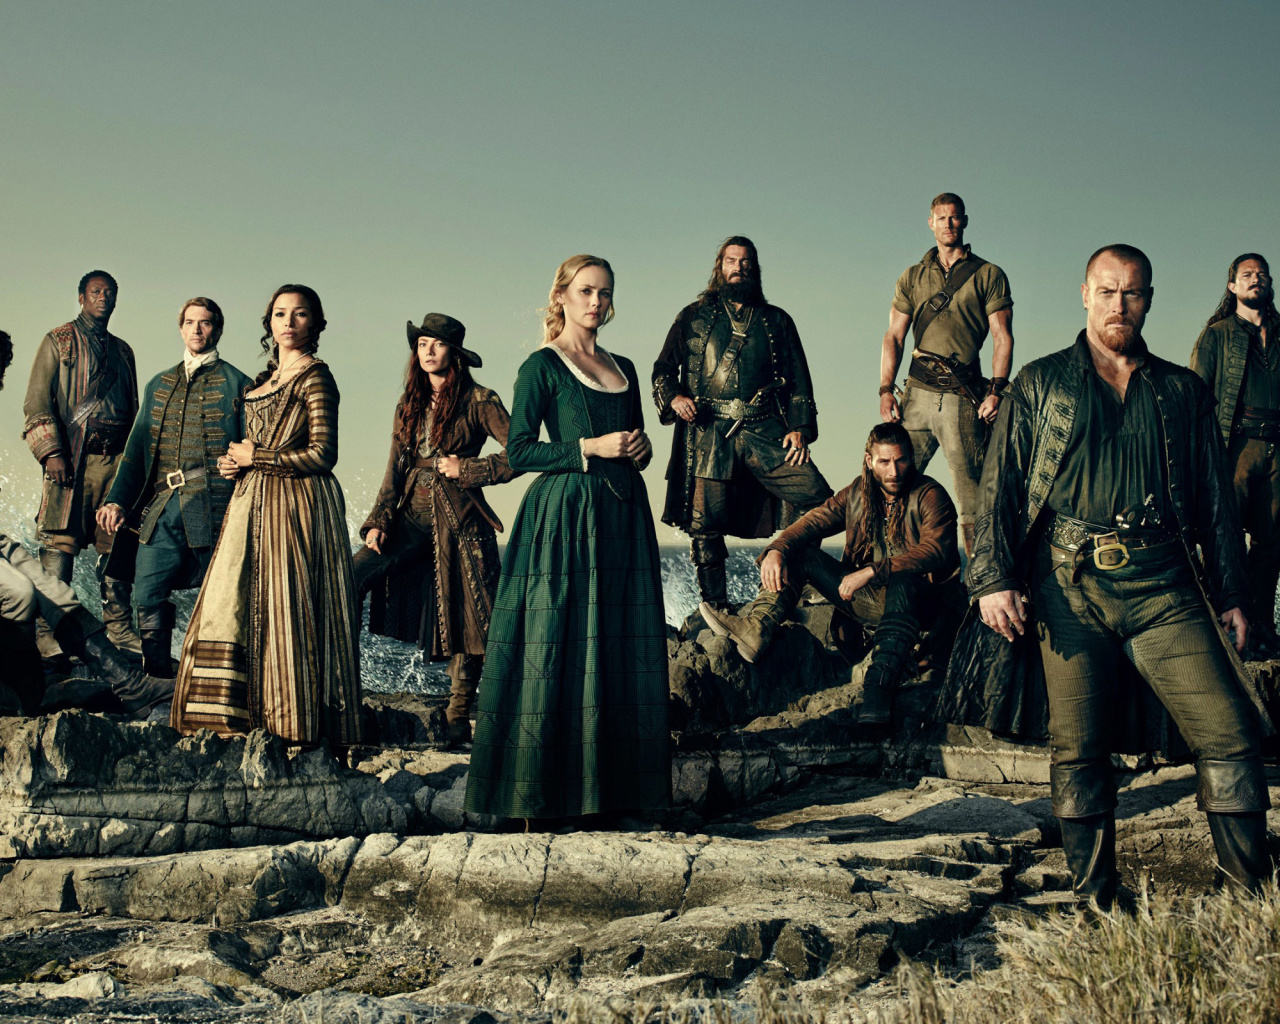 Das Black Sails TV Series 4 Season Wallpaper 1280x1024